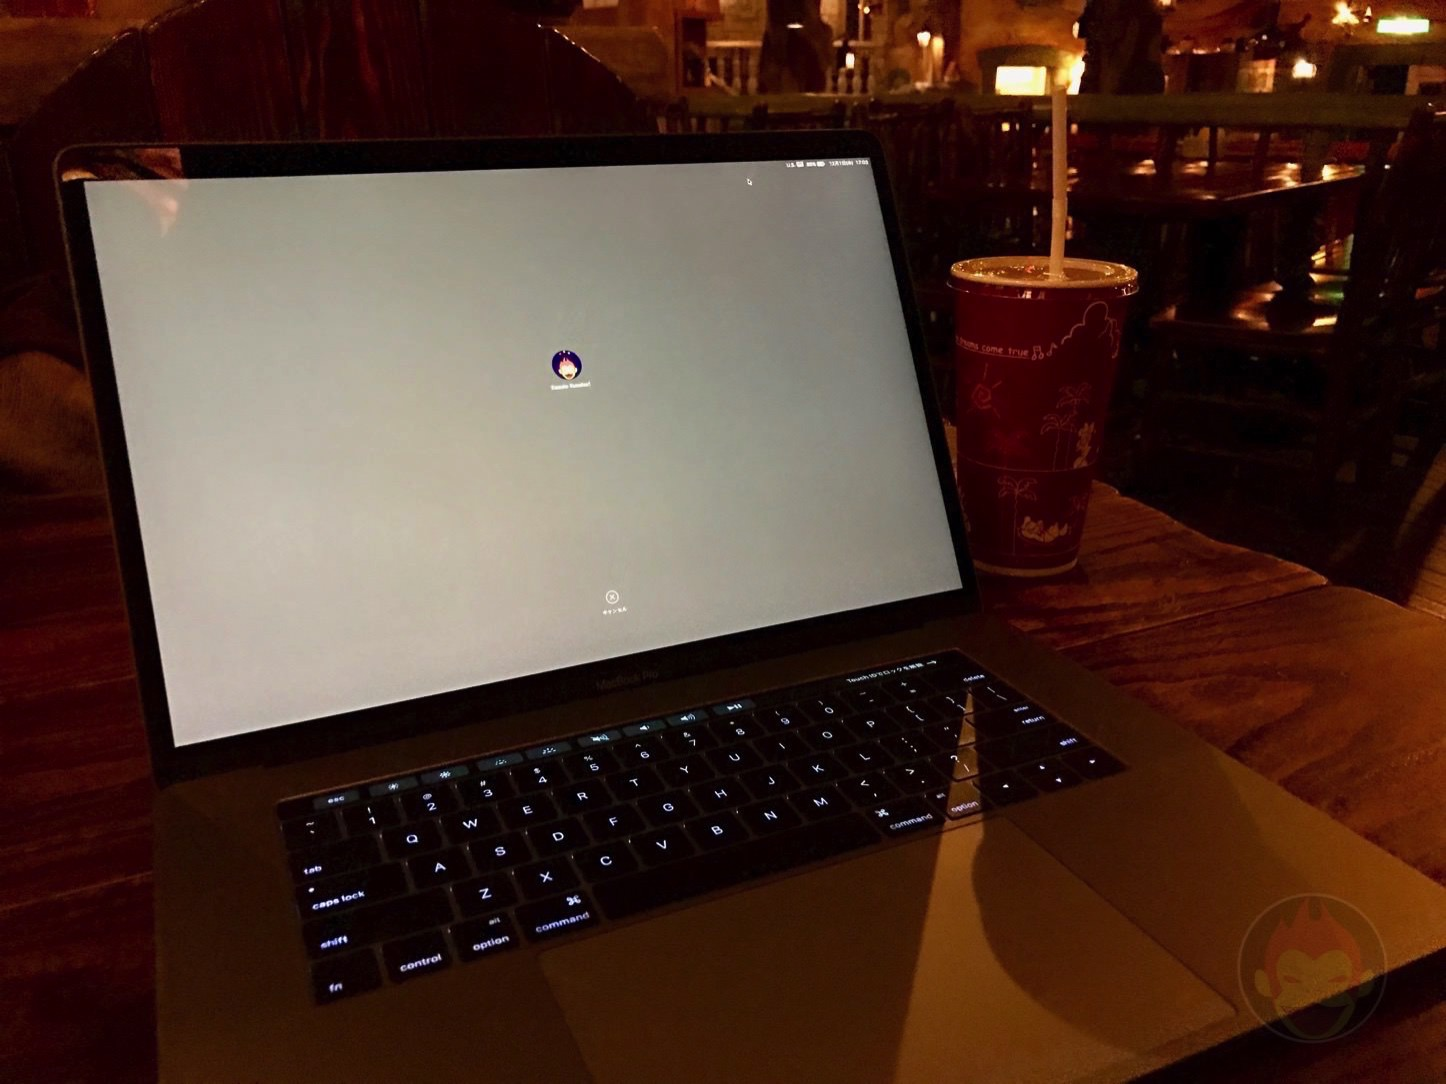 Using-MacBookPro2016-15inch-at-disney-22.jpg